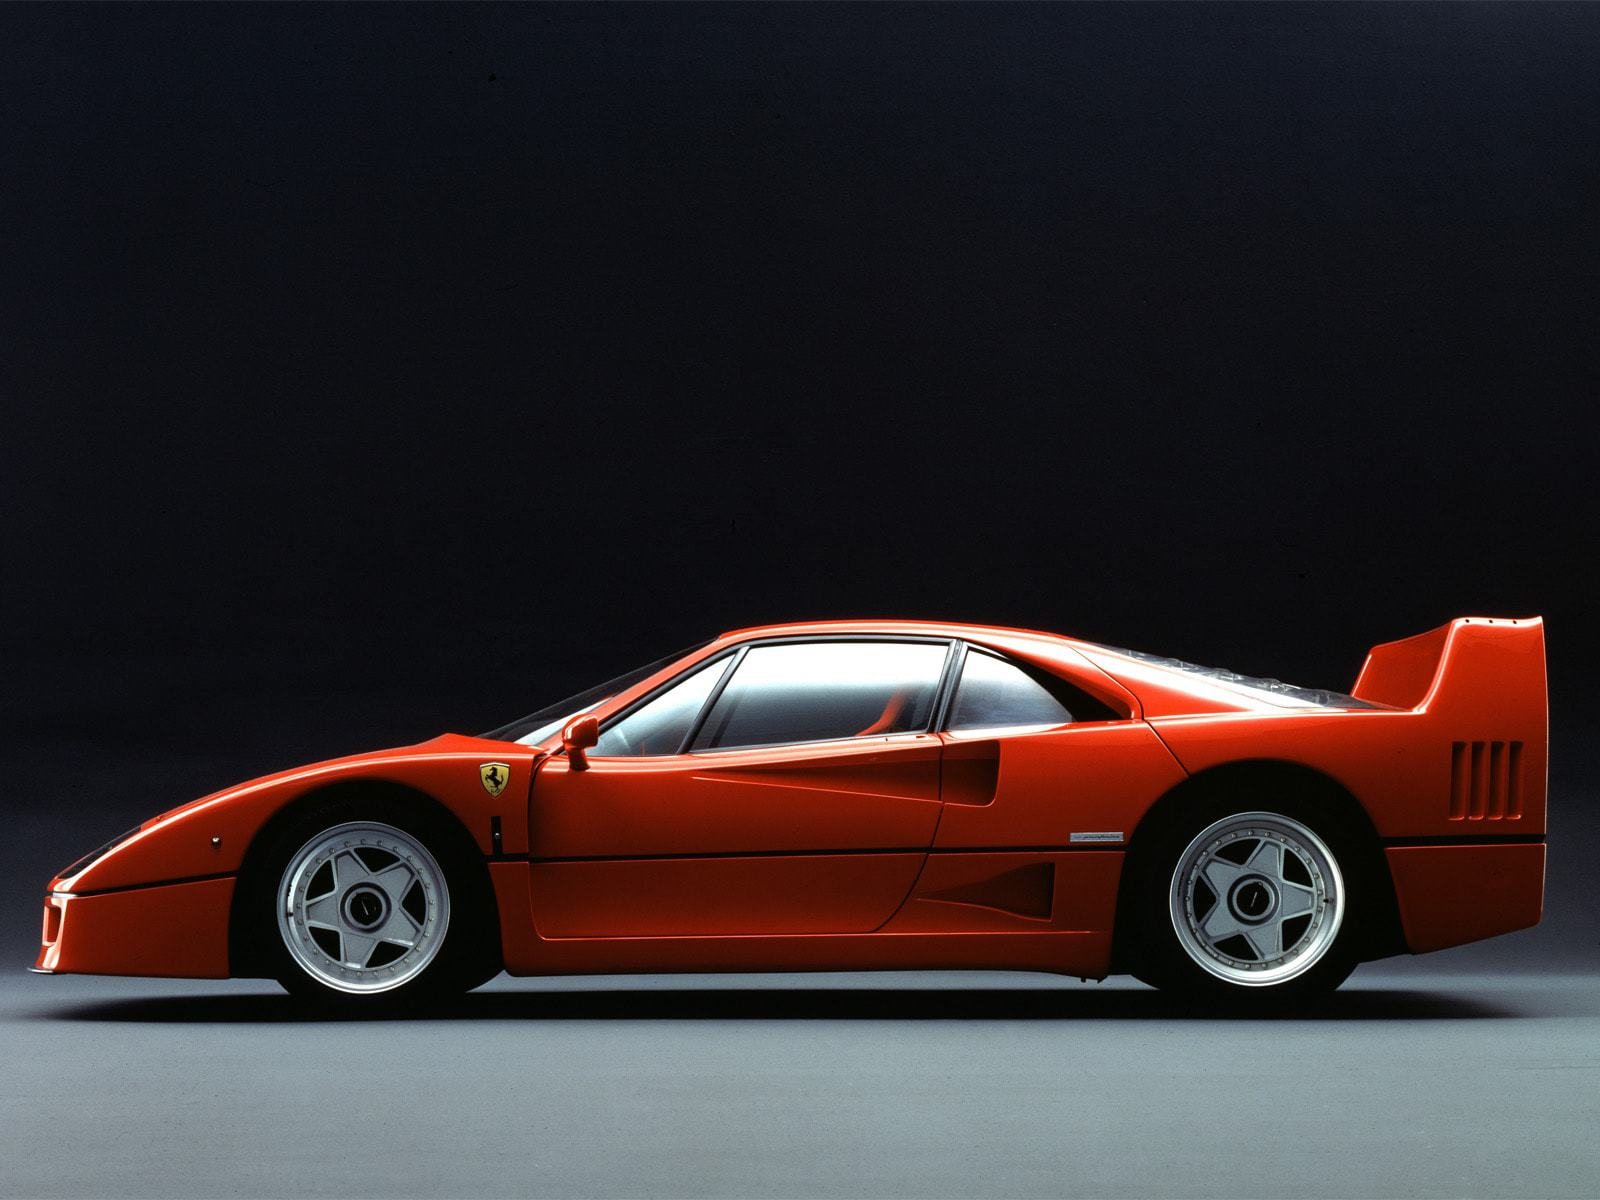 Ferrari F40 Photos